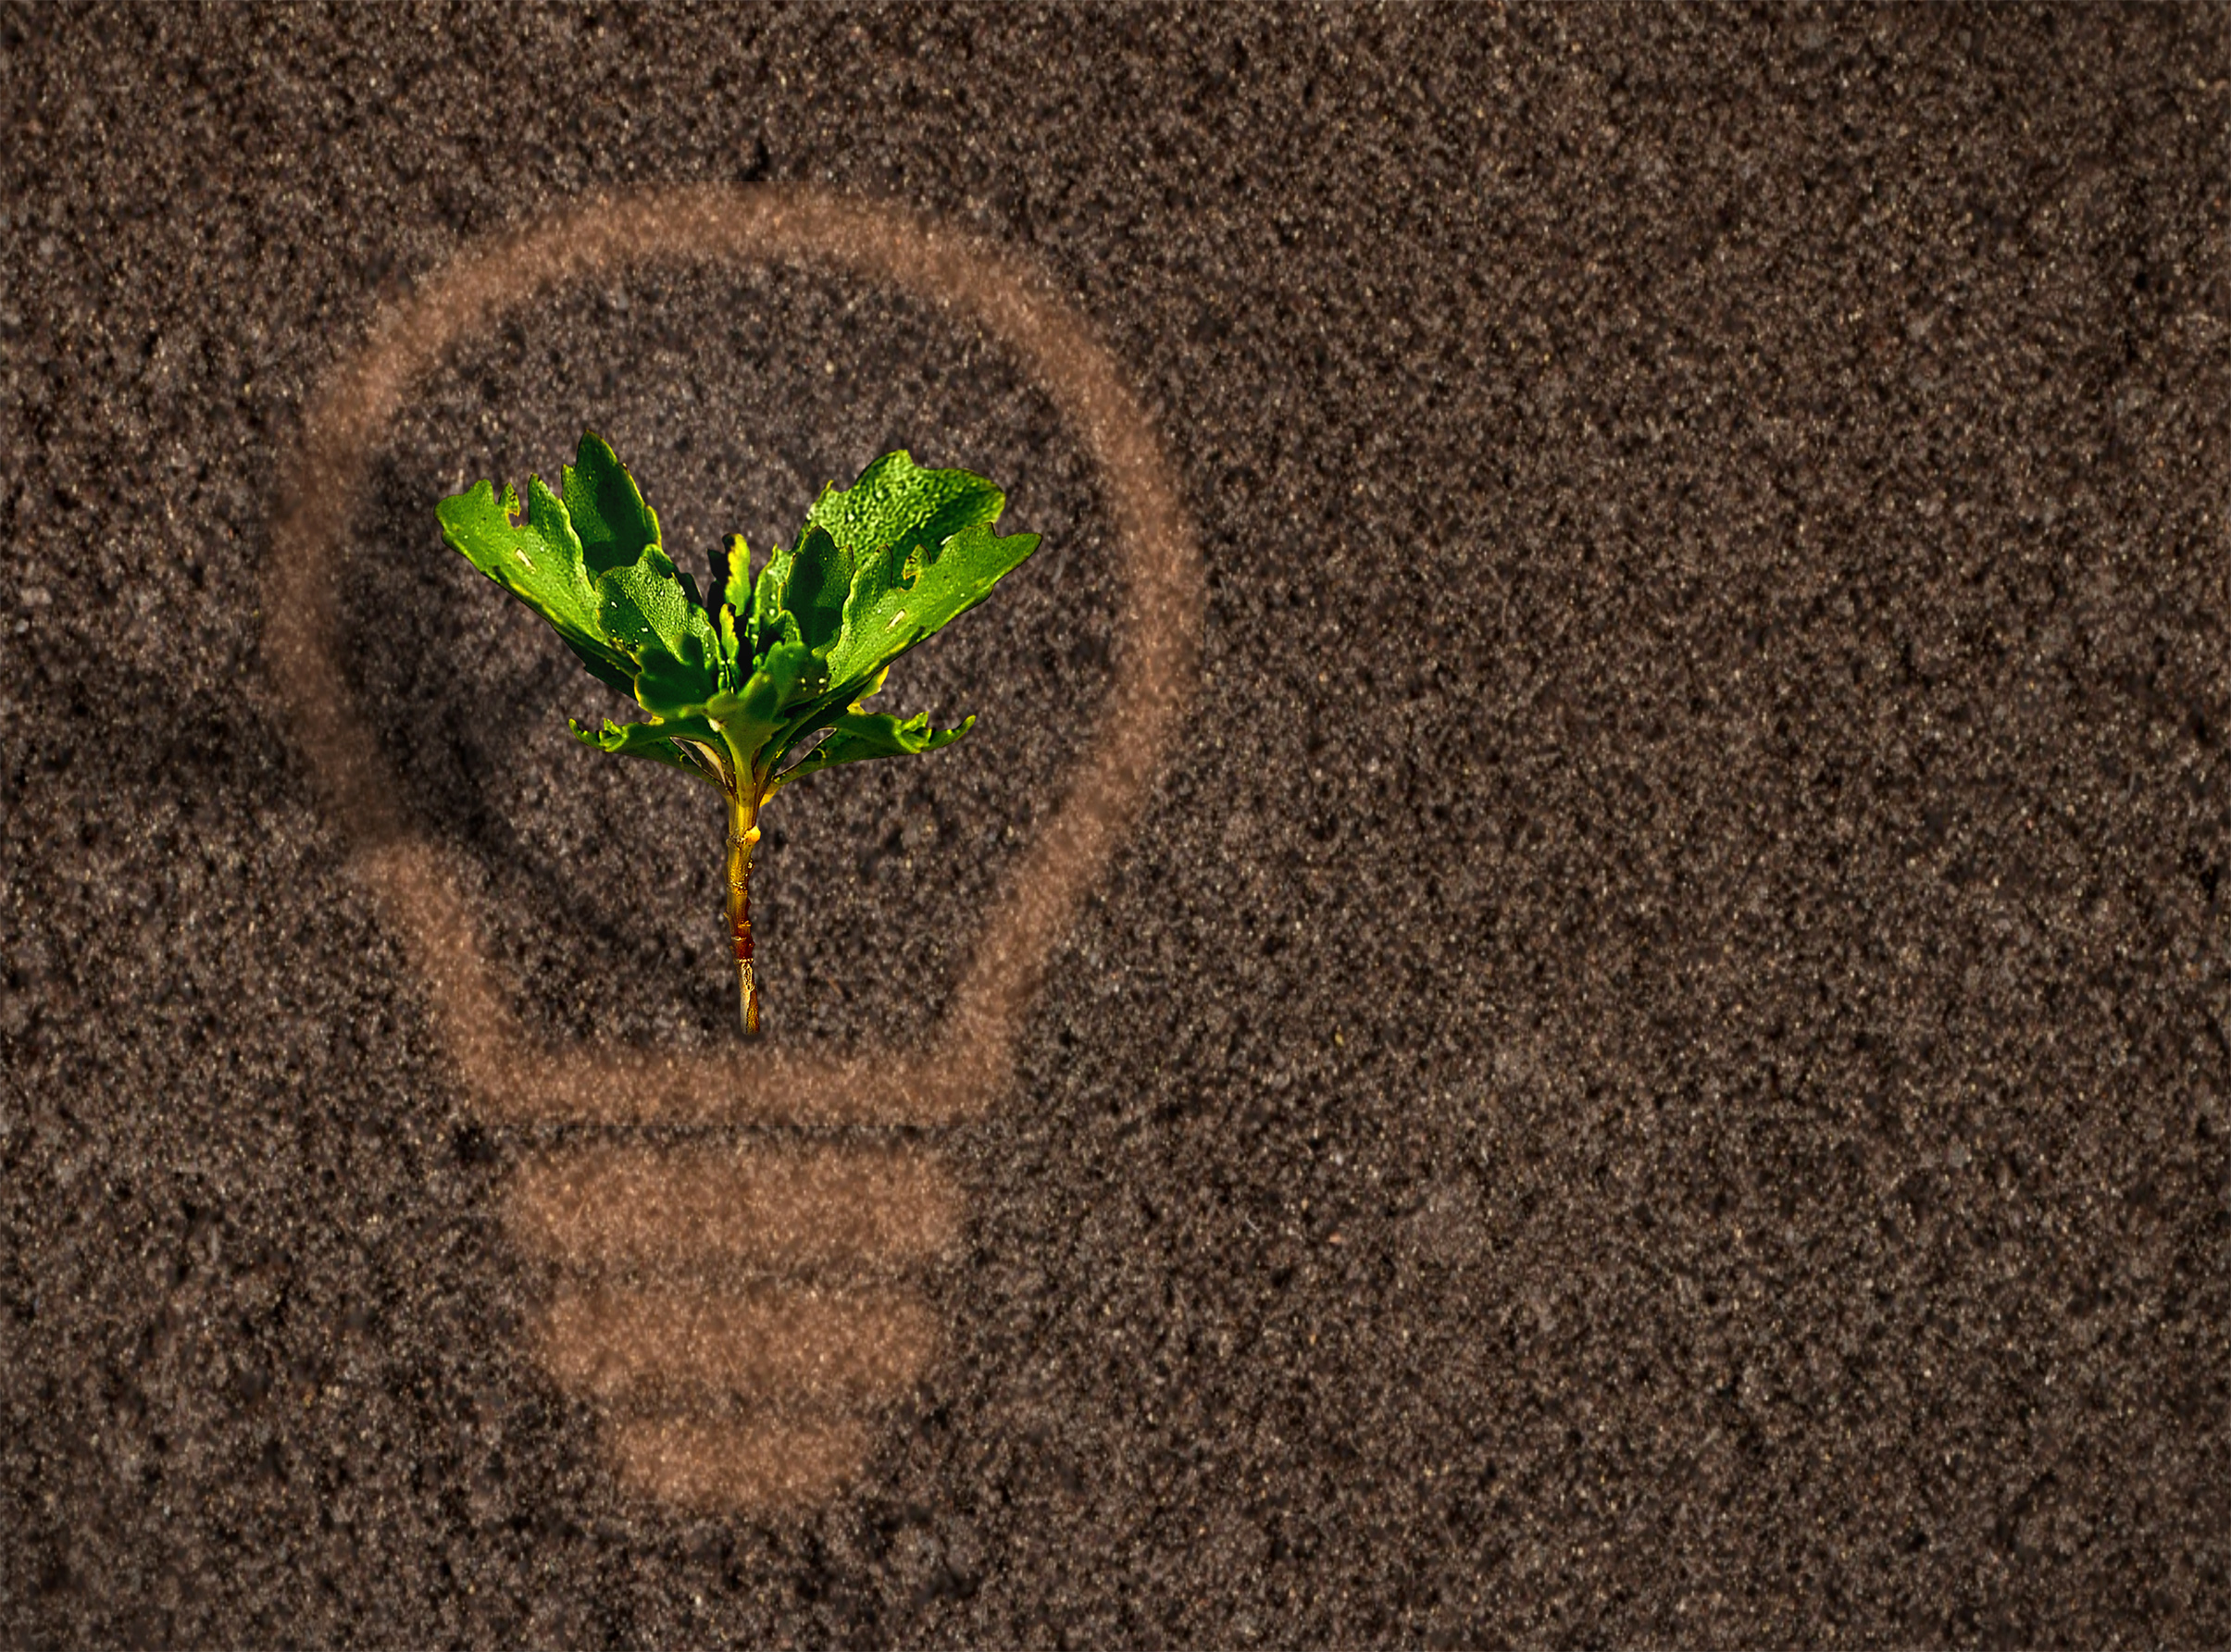 Green plant sprout growing within a lightbulb silhouette on soil photo